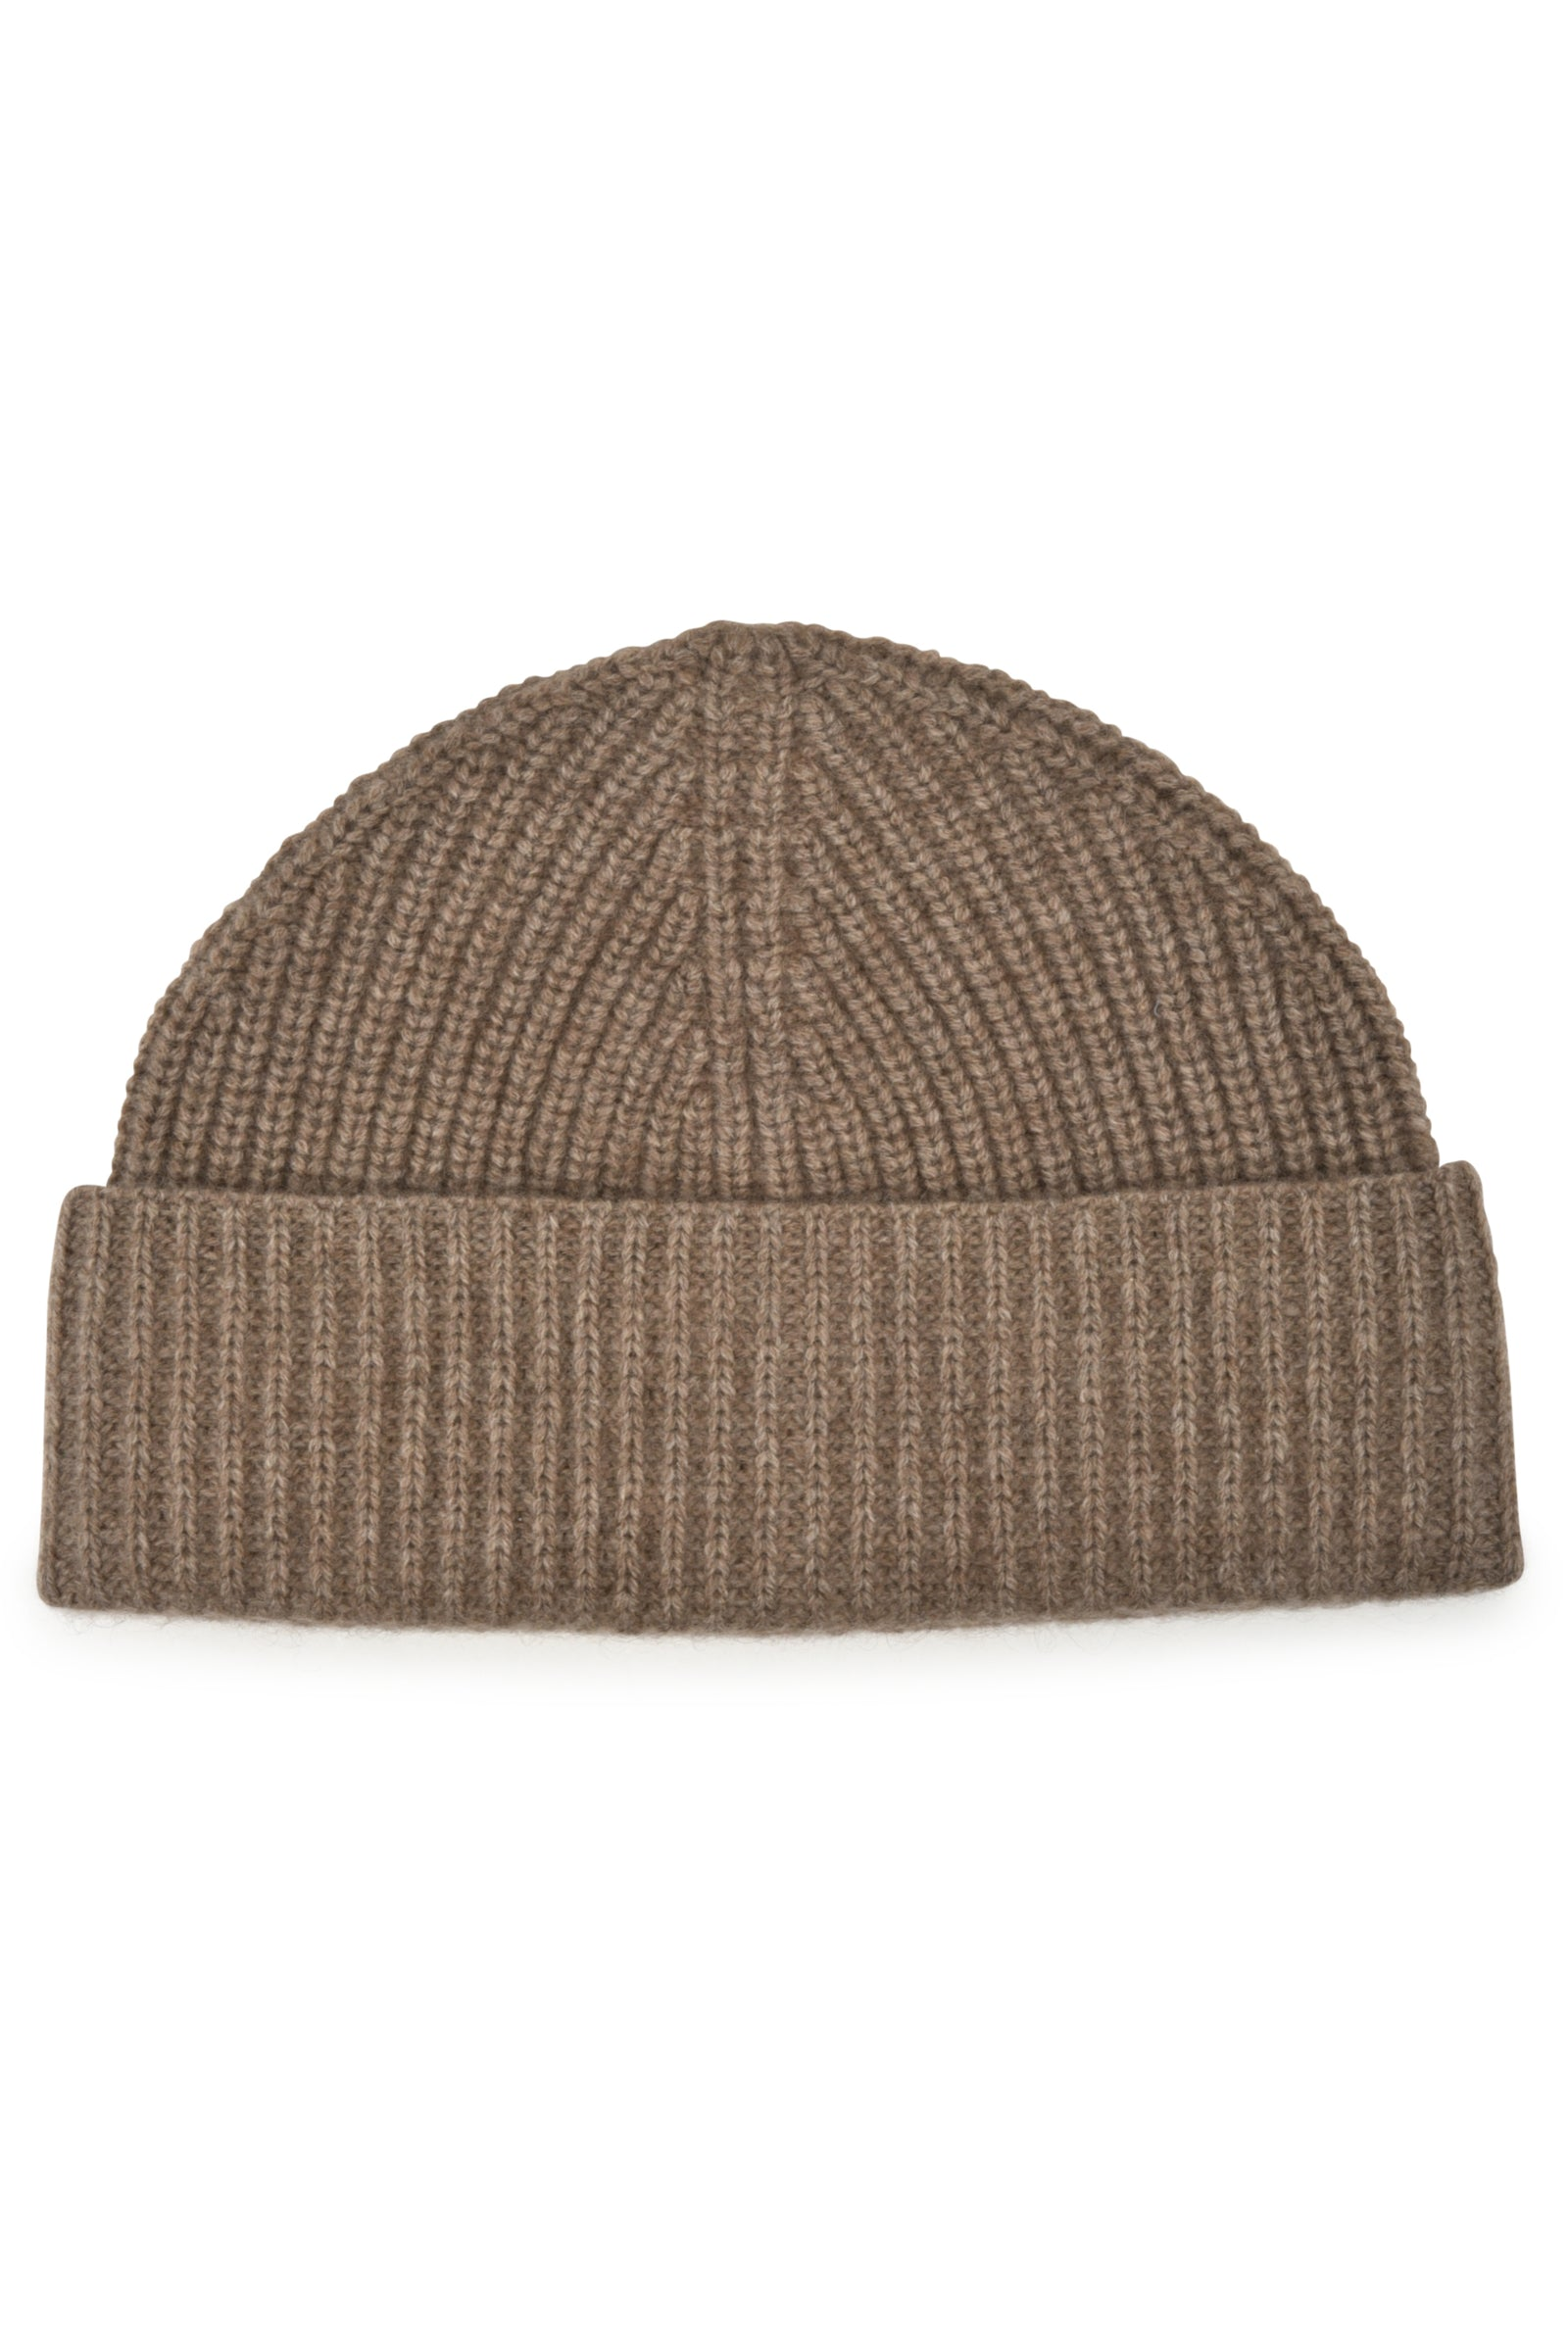 Cashmere Cap in Natural